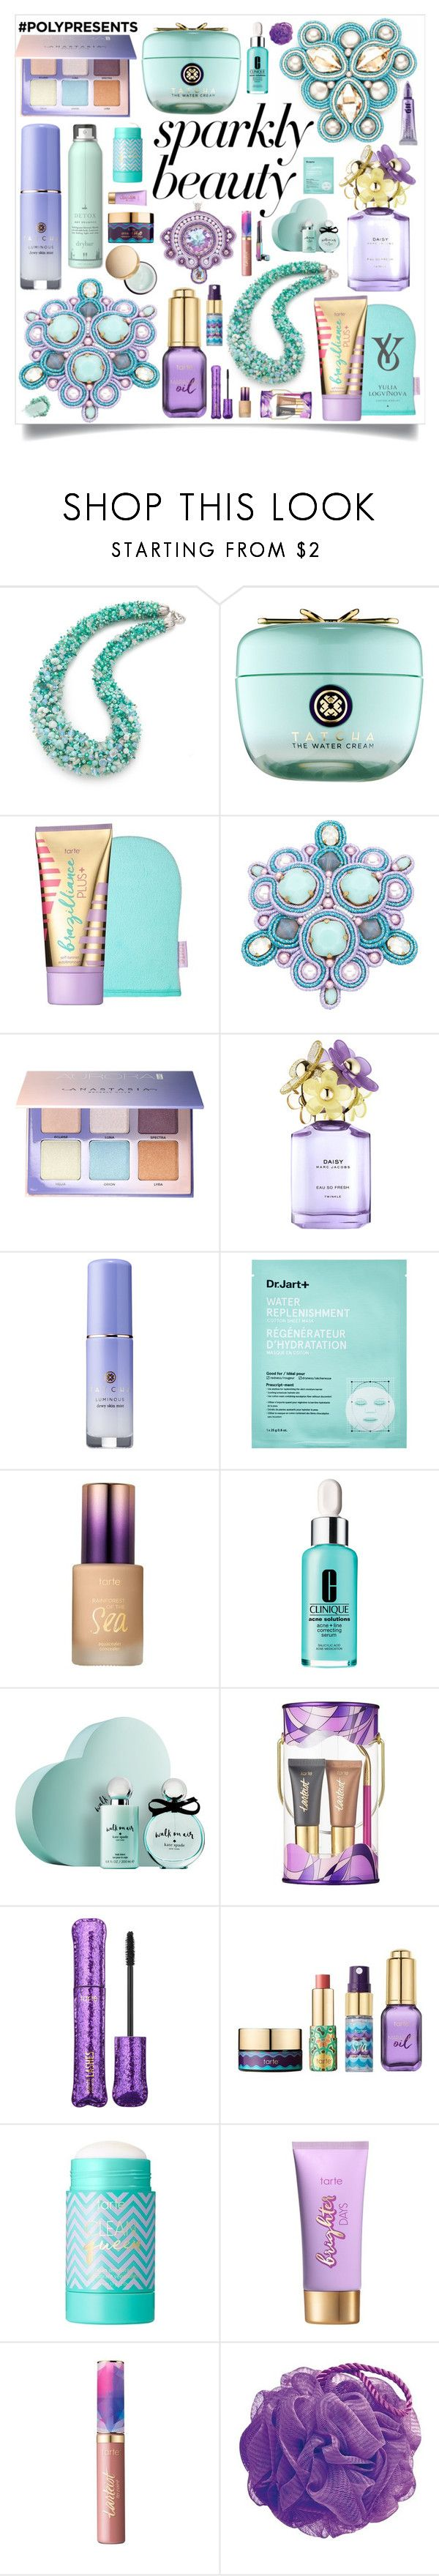 """""""#PolyPresents: Sparkly Beauty"""" by okatava ❤ liked on Polyvore featuring beauty, Tatcha, Sephora Collection, Anastasia Beverly Hills, Marc Jacobs, Nails Inc., tarte, Kate Spade, Puma and contestentry"""